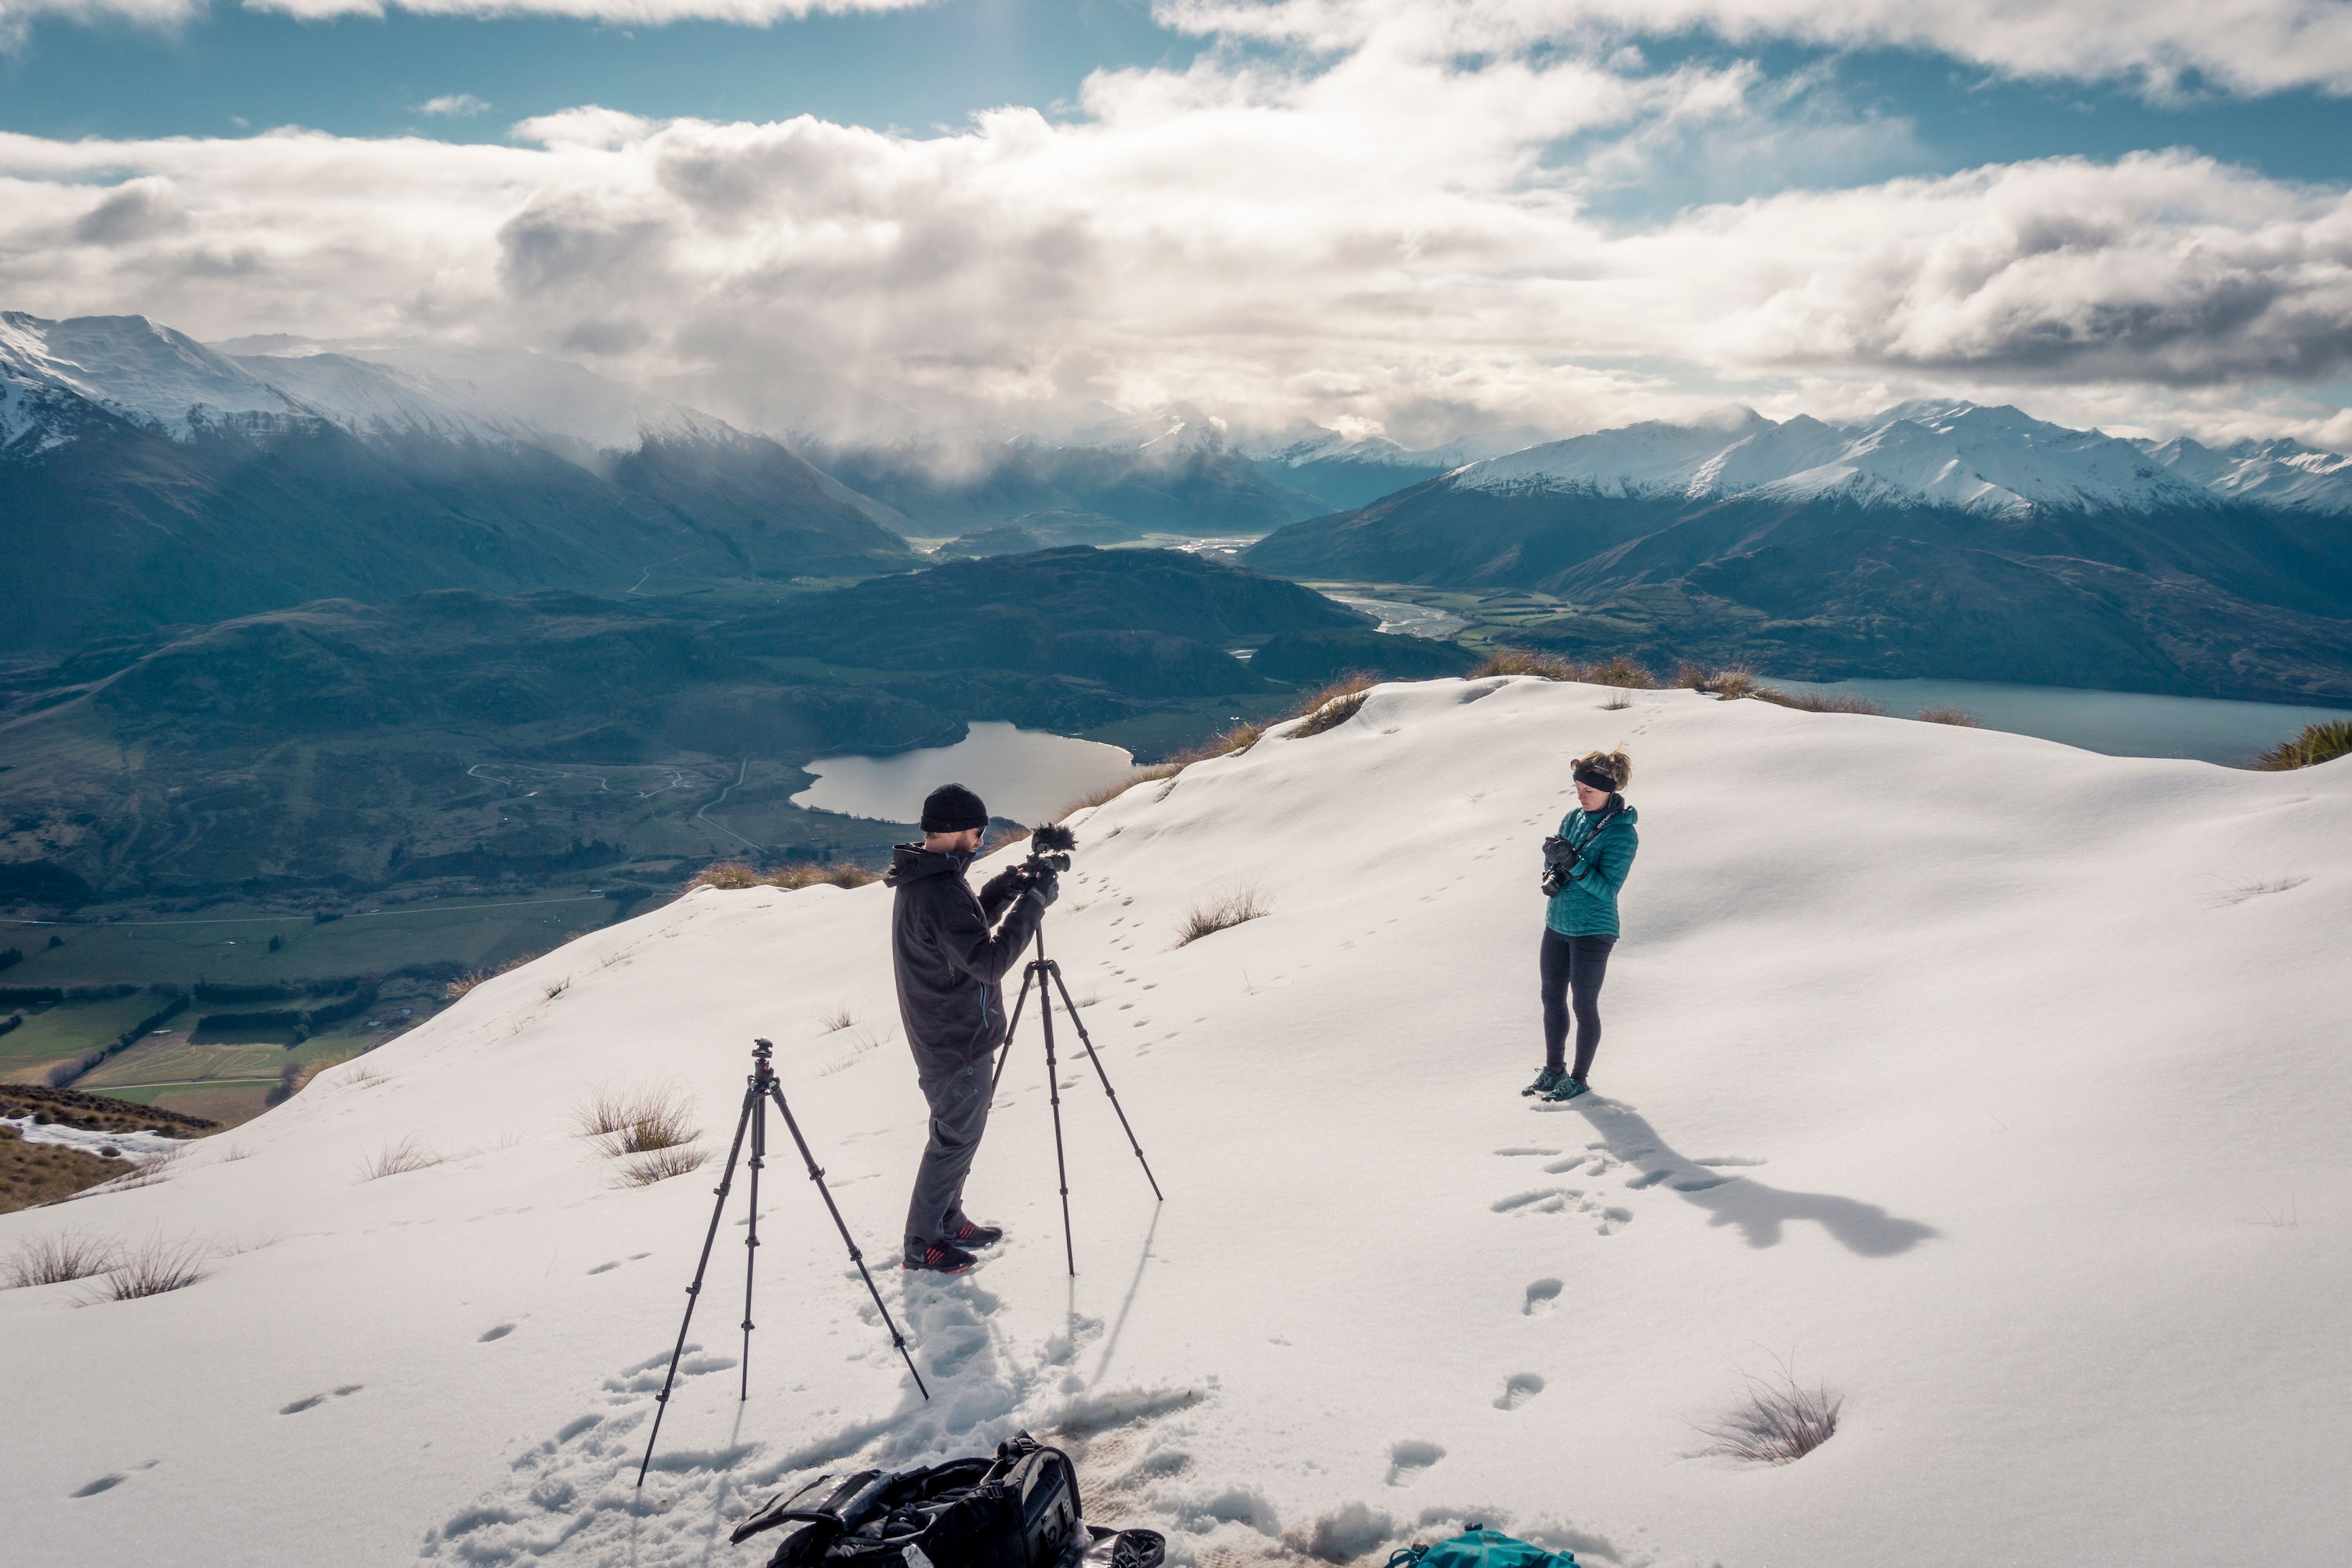 filming on top of a mountain